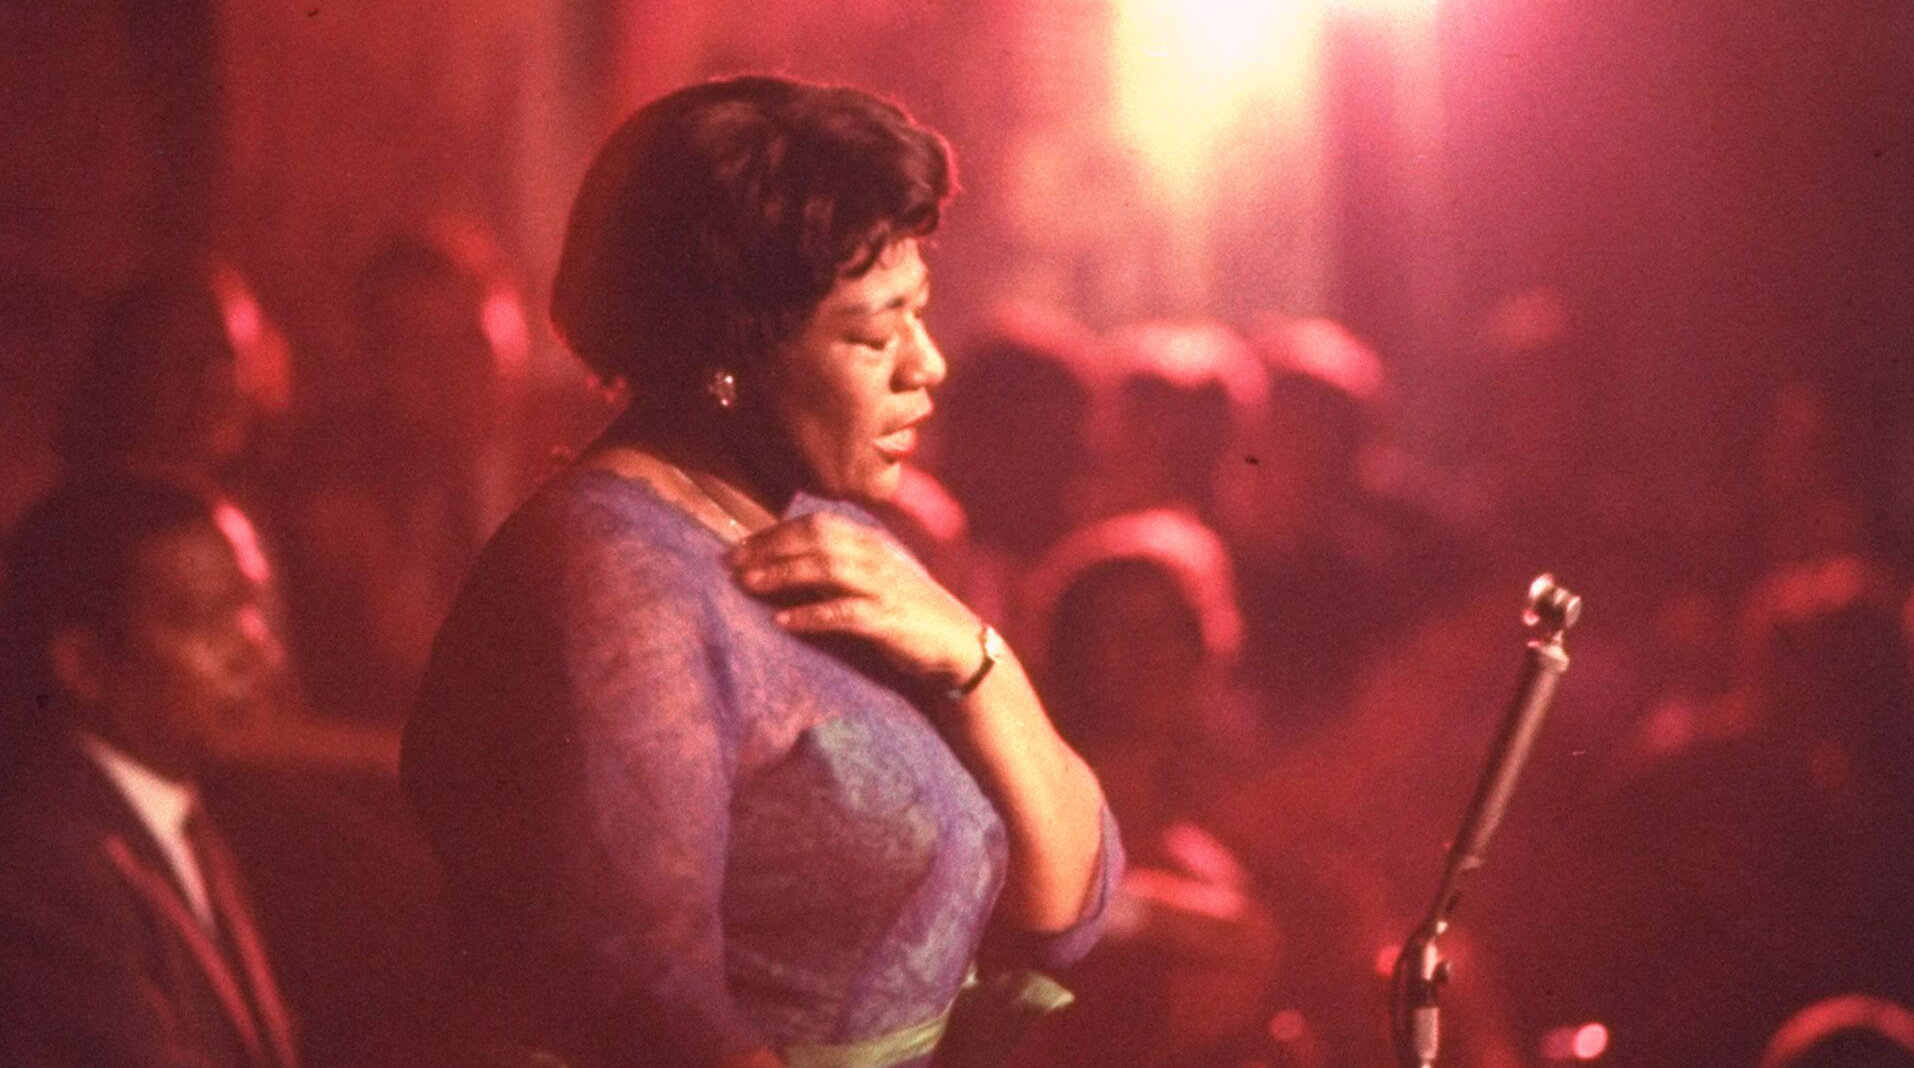 Image of Ella Fitzgerald singing into a microphone on stage. A still from the documentary Ella Fitzgerald: Just One Of Those Things